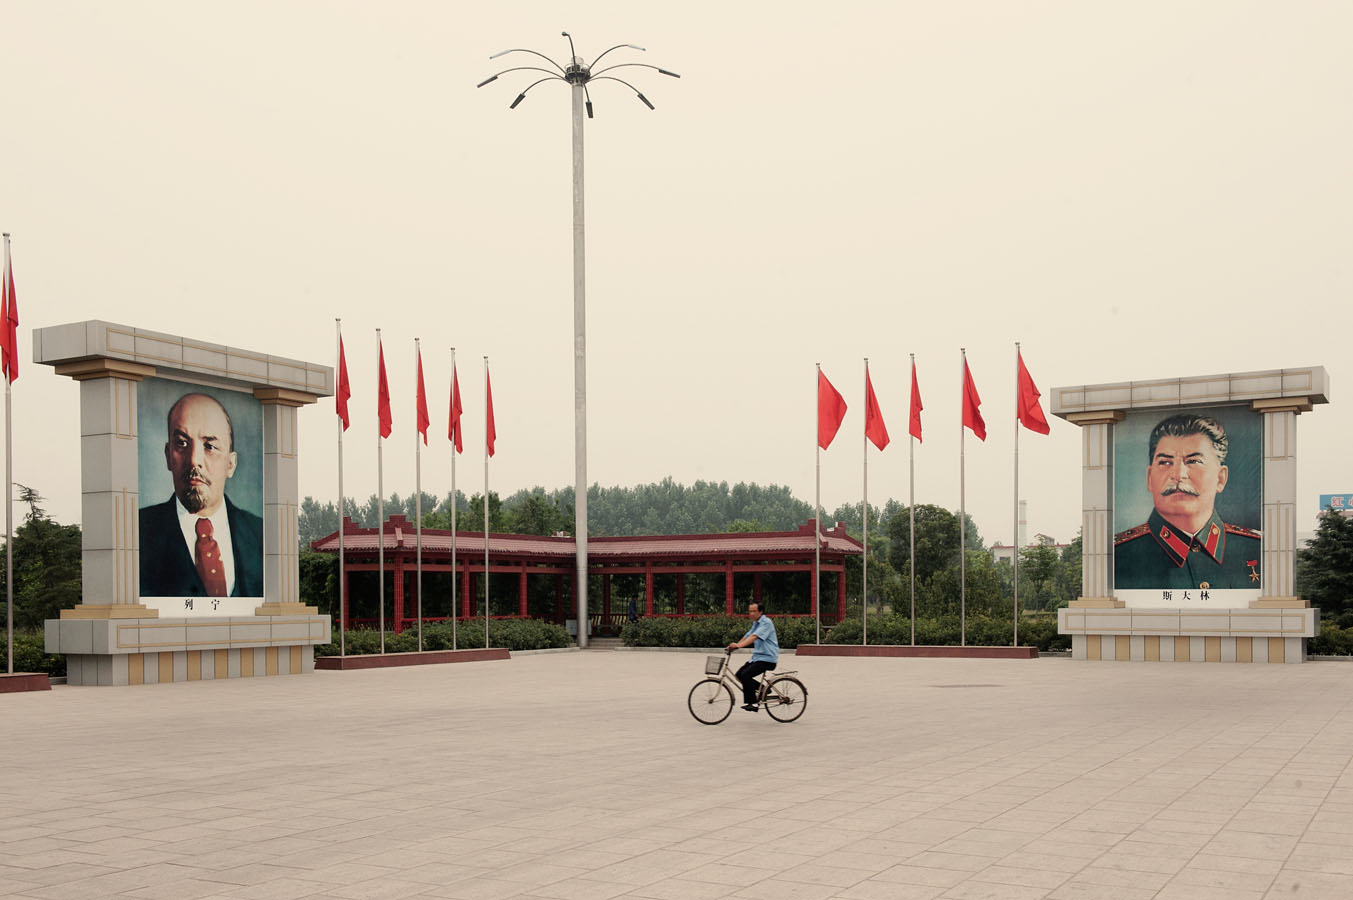 On The East is Red square of, a local riding his bike by giant portraits of Lenin and Stalin..